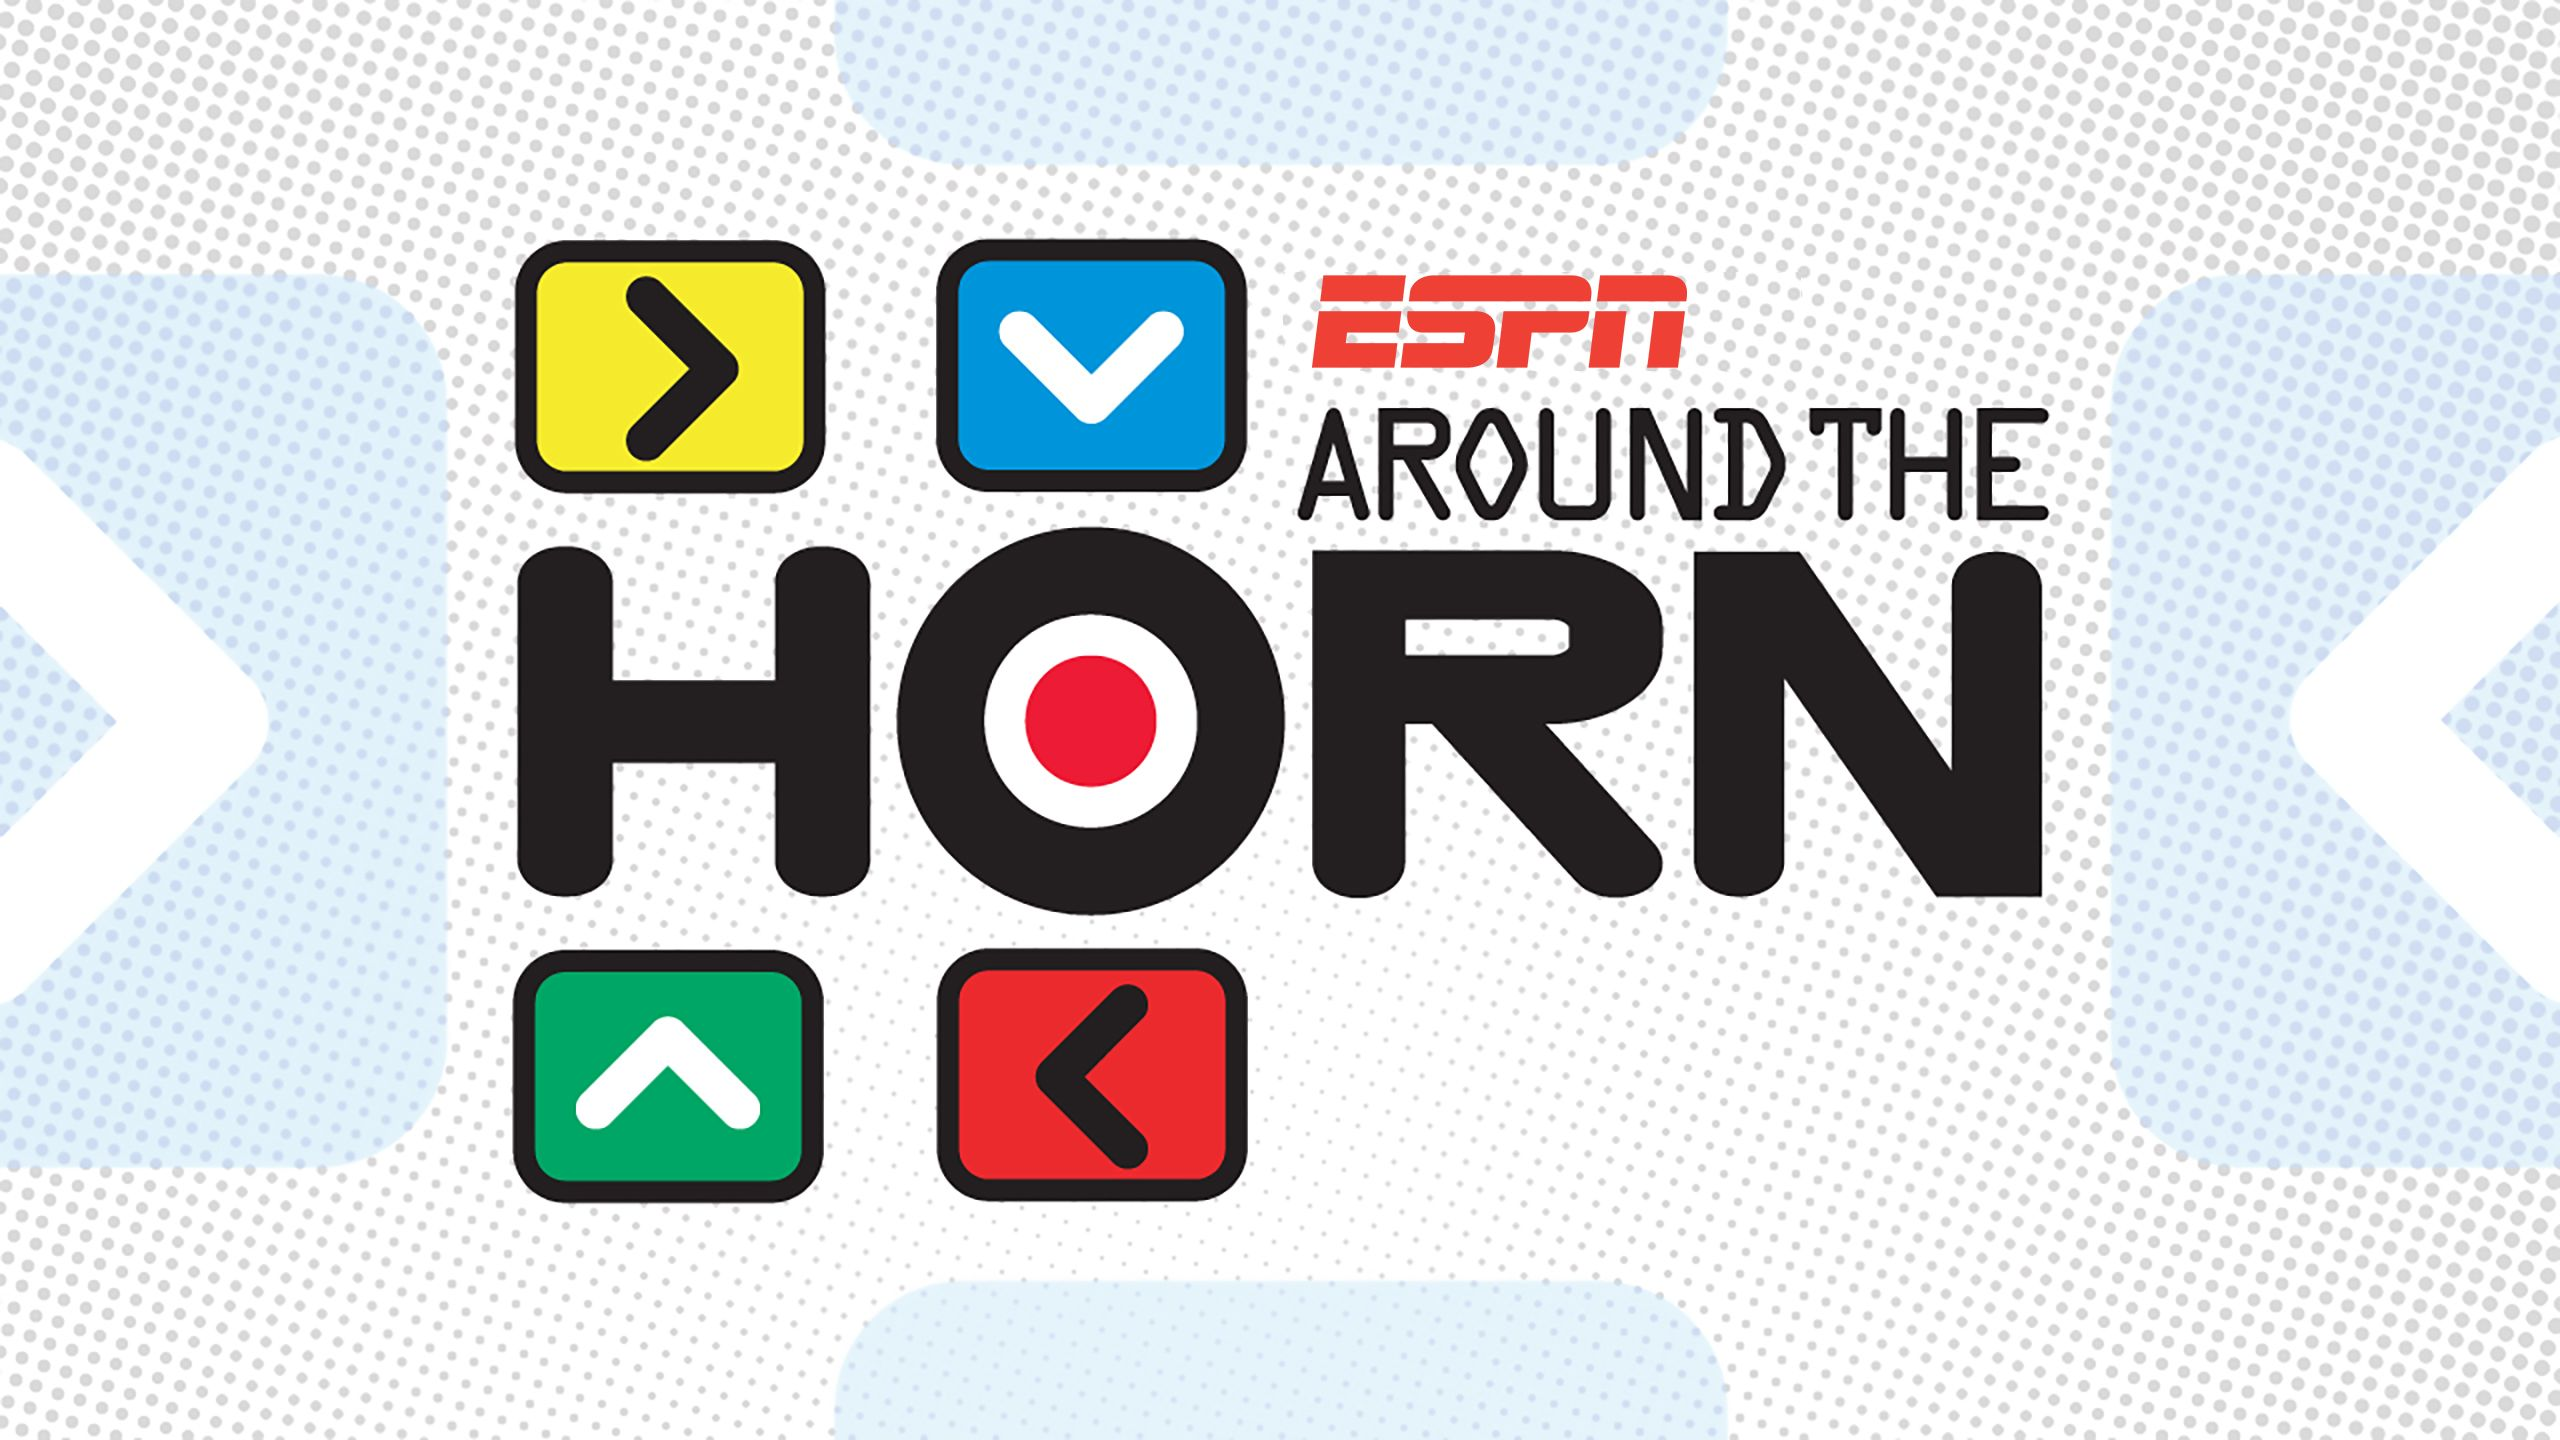 Wed, 7/18 - Around The Horn